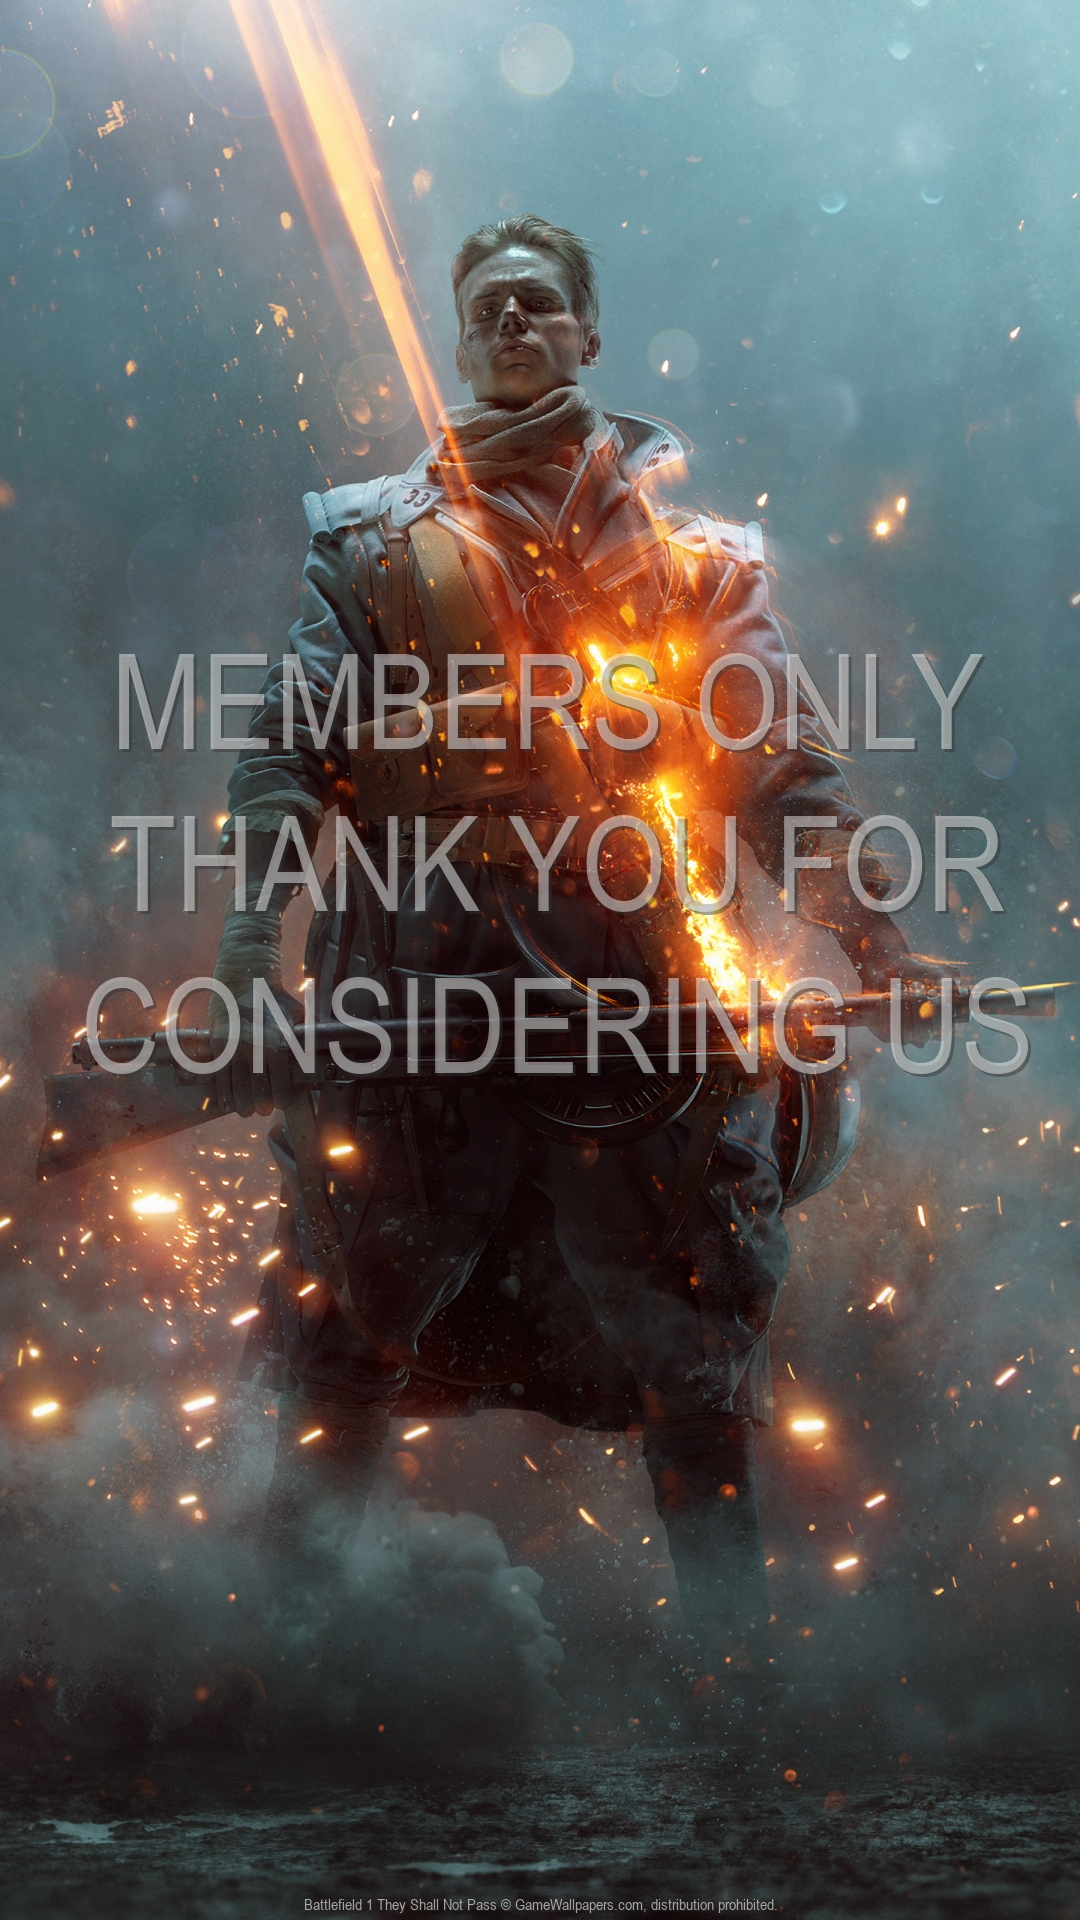 Battlefield 1 They Shall Not Pass 1920x1080 Mobile Wallpaper Or Background 01